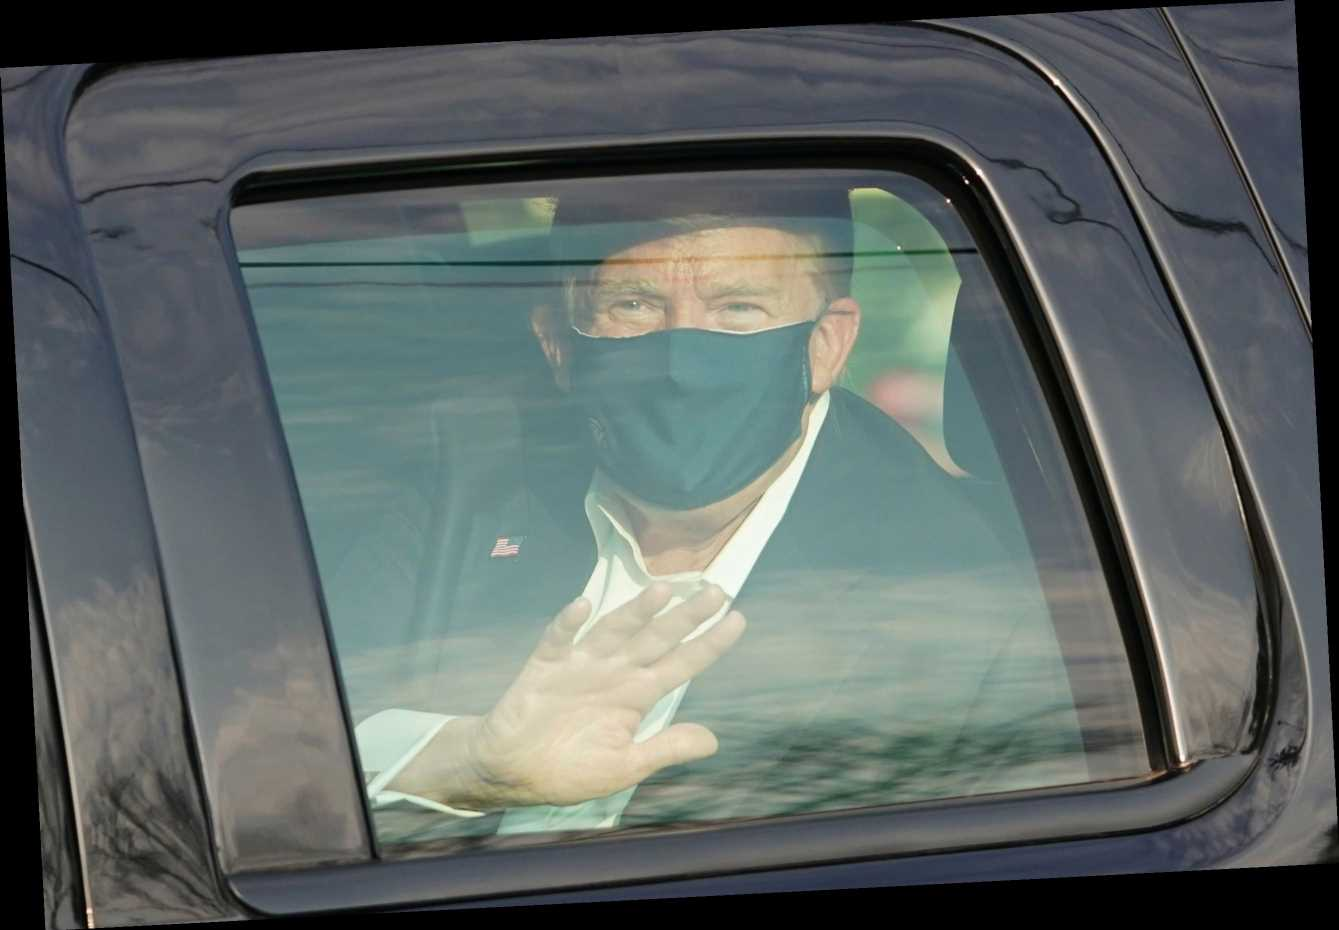 Donald Trump briefly leaves hospital to surprise supporters after video message saying he's 'learned a lot about Covid'